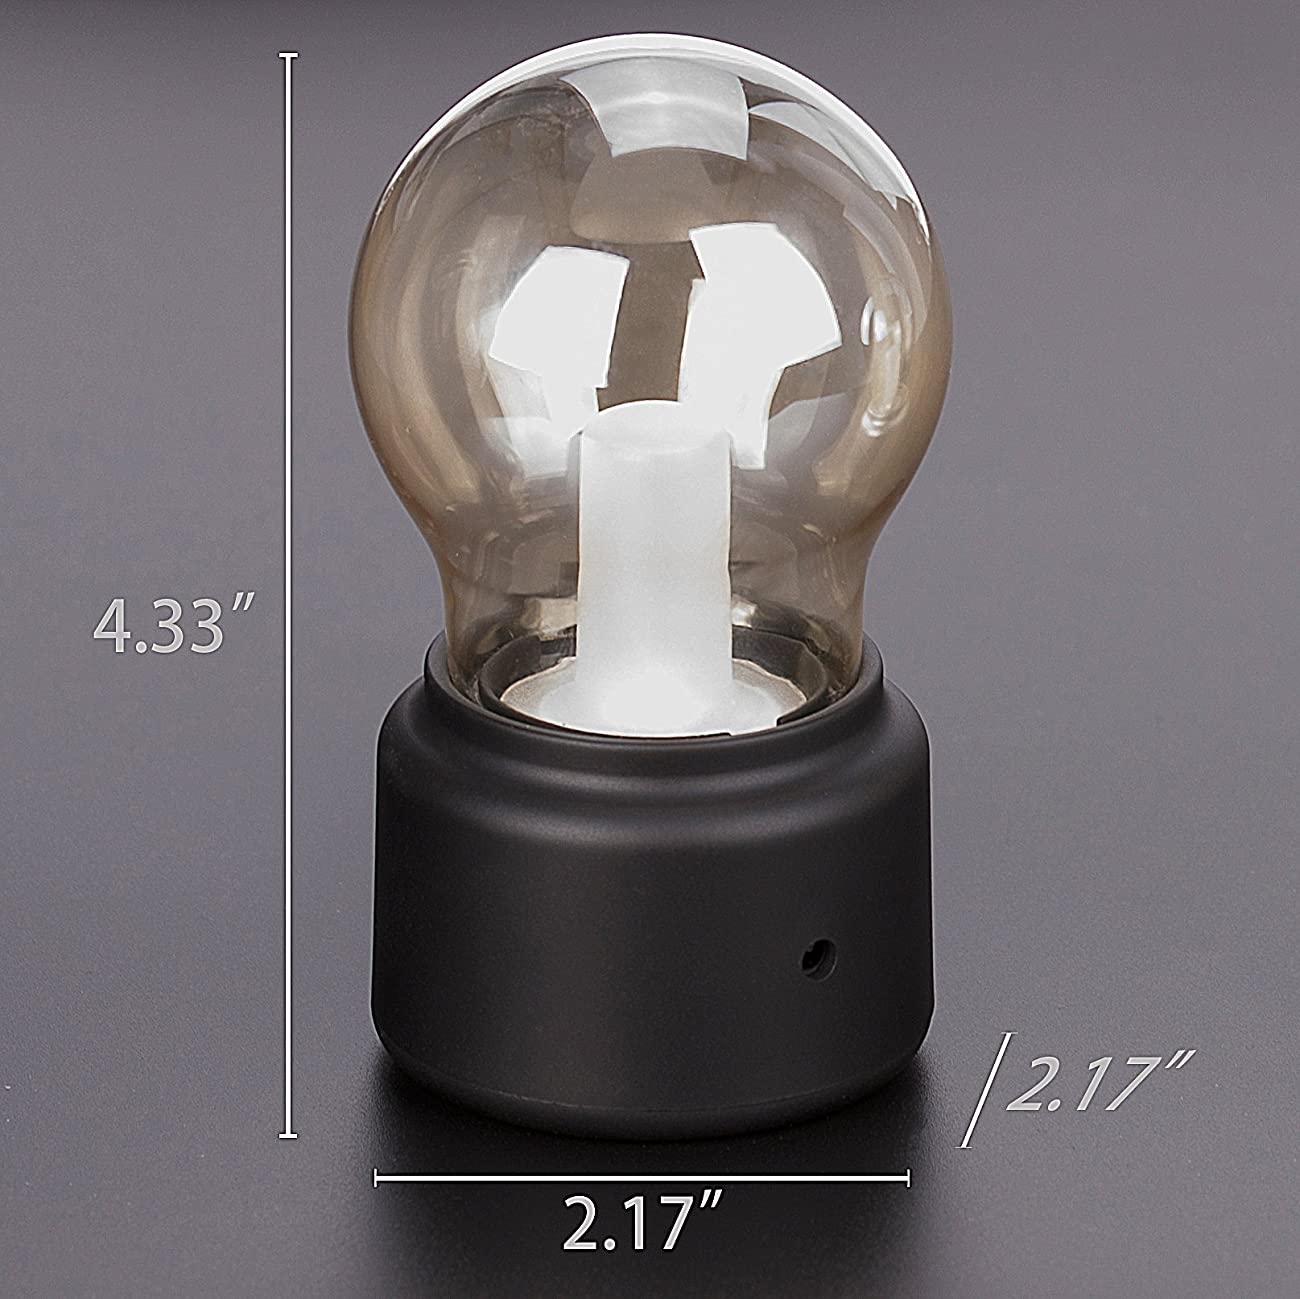 Veesee LED Vintage Light Bulb Rechargeable Night Light Safety USB Energy Saving Low Voltage Portable for Home Desk Table Tea Travel (Black) 5